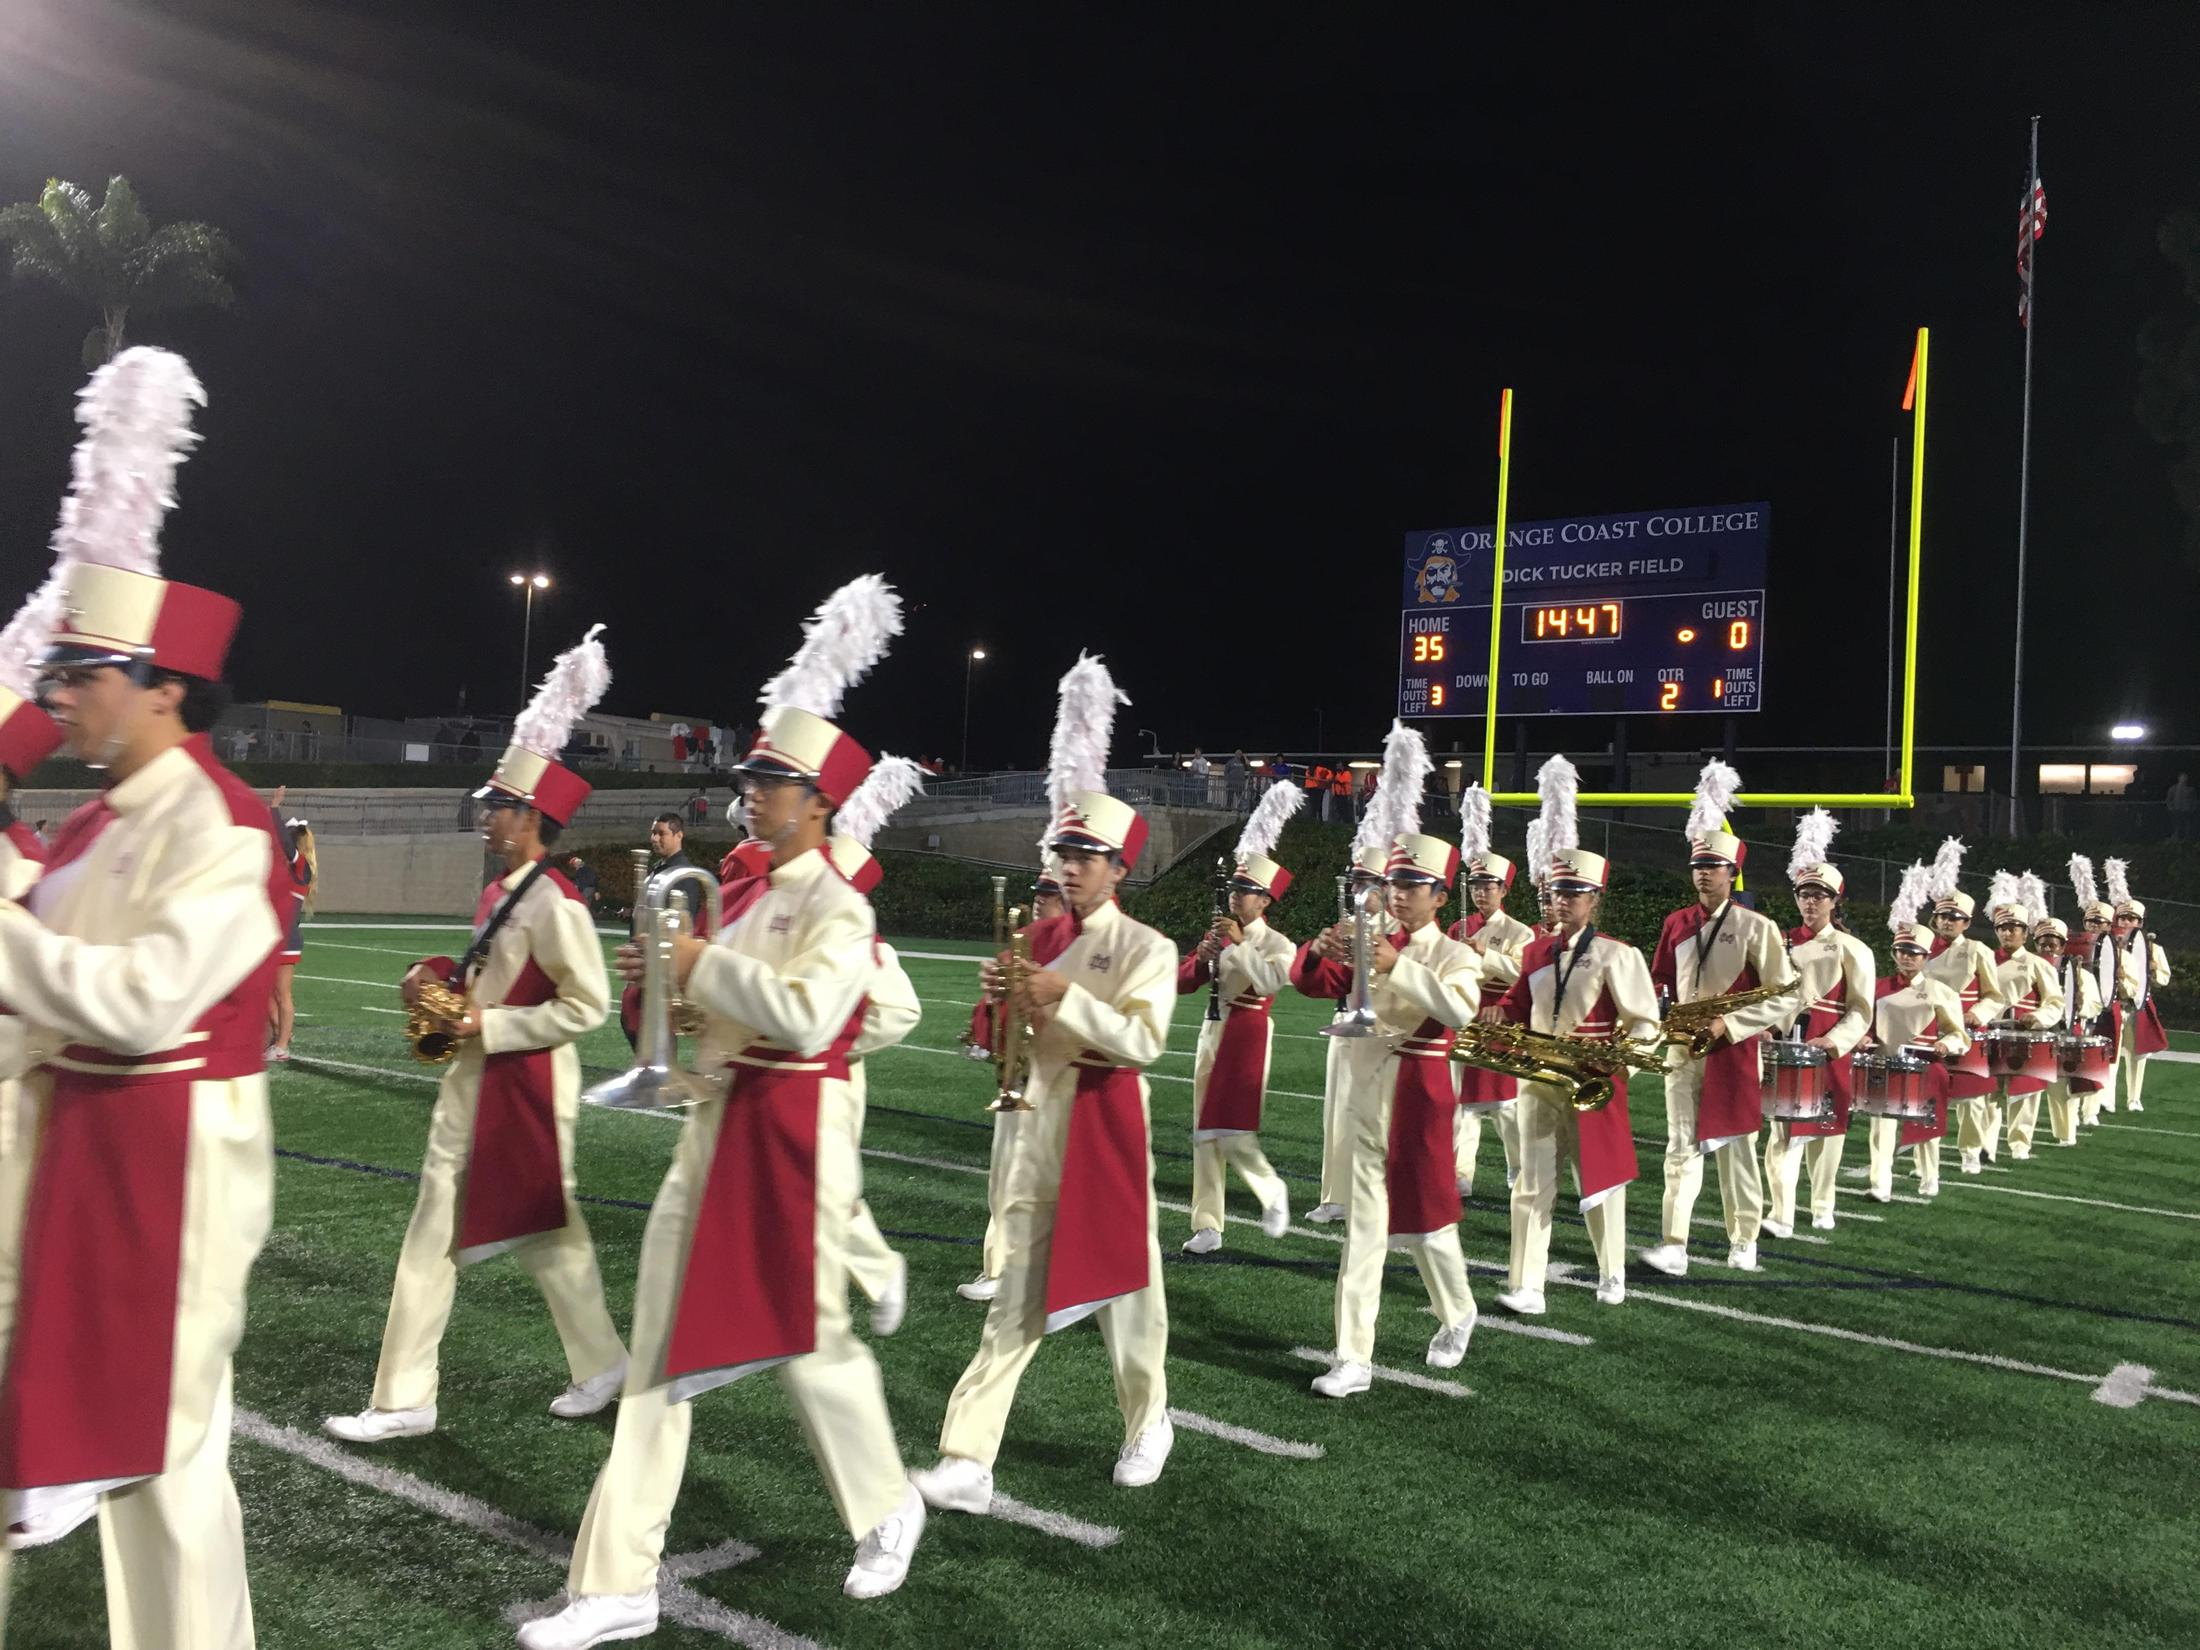 The Paris High School band program has a long and rich history of excellence dating back to A.